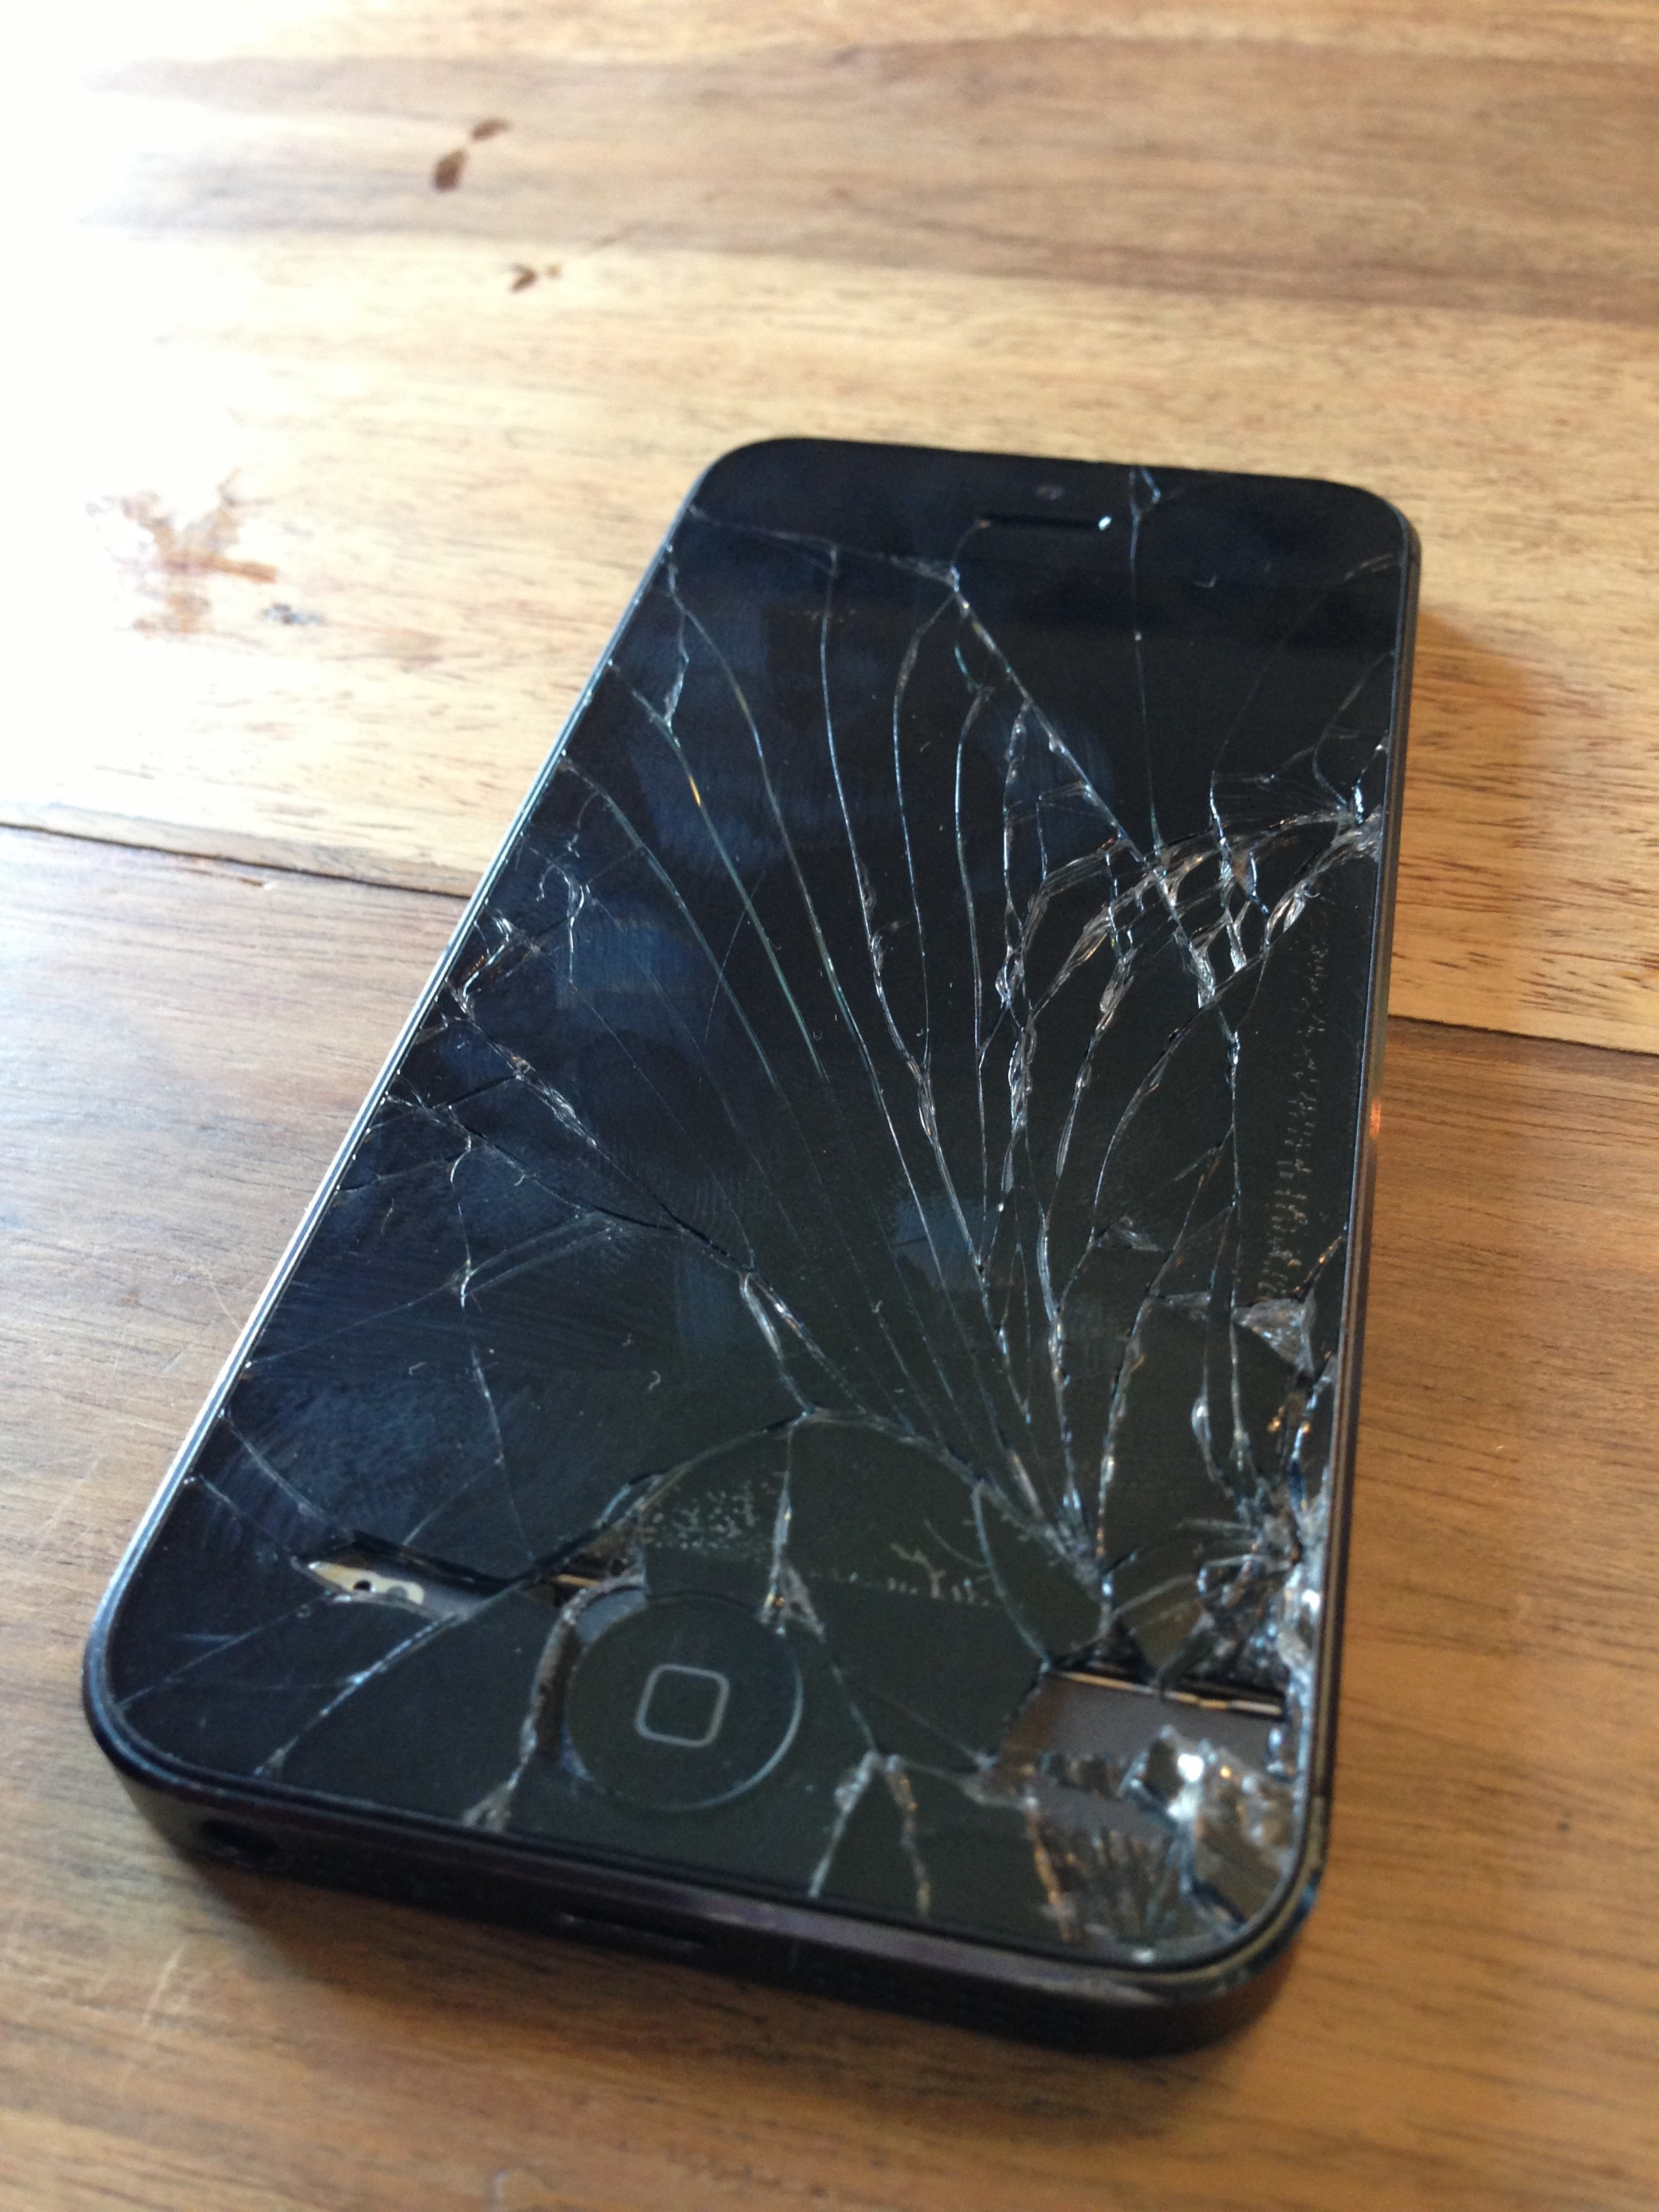 Detroit iPhone Repair – Get Your Cracked Screen Fixed Today!